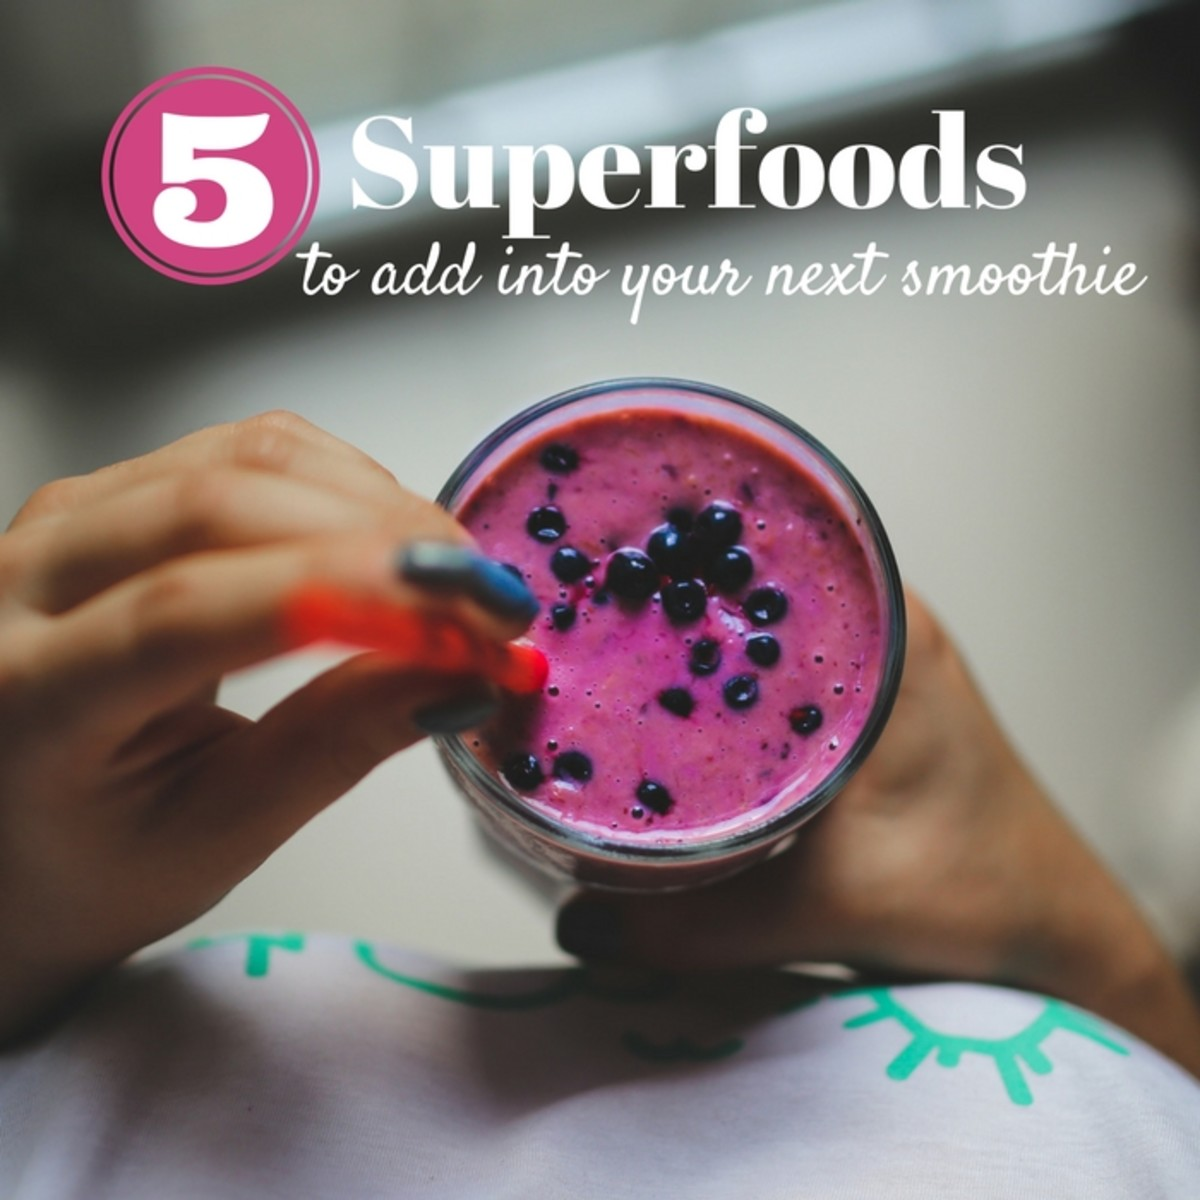 superfoods to add to your smoothie